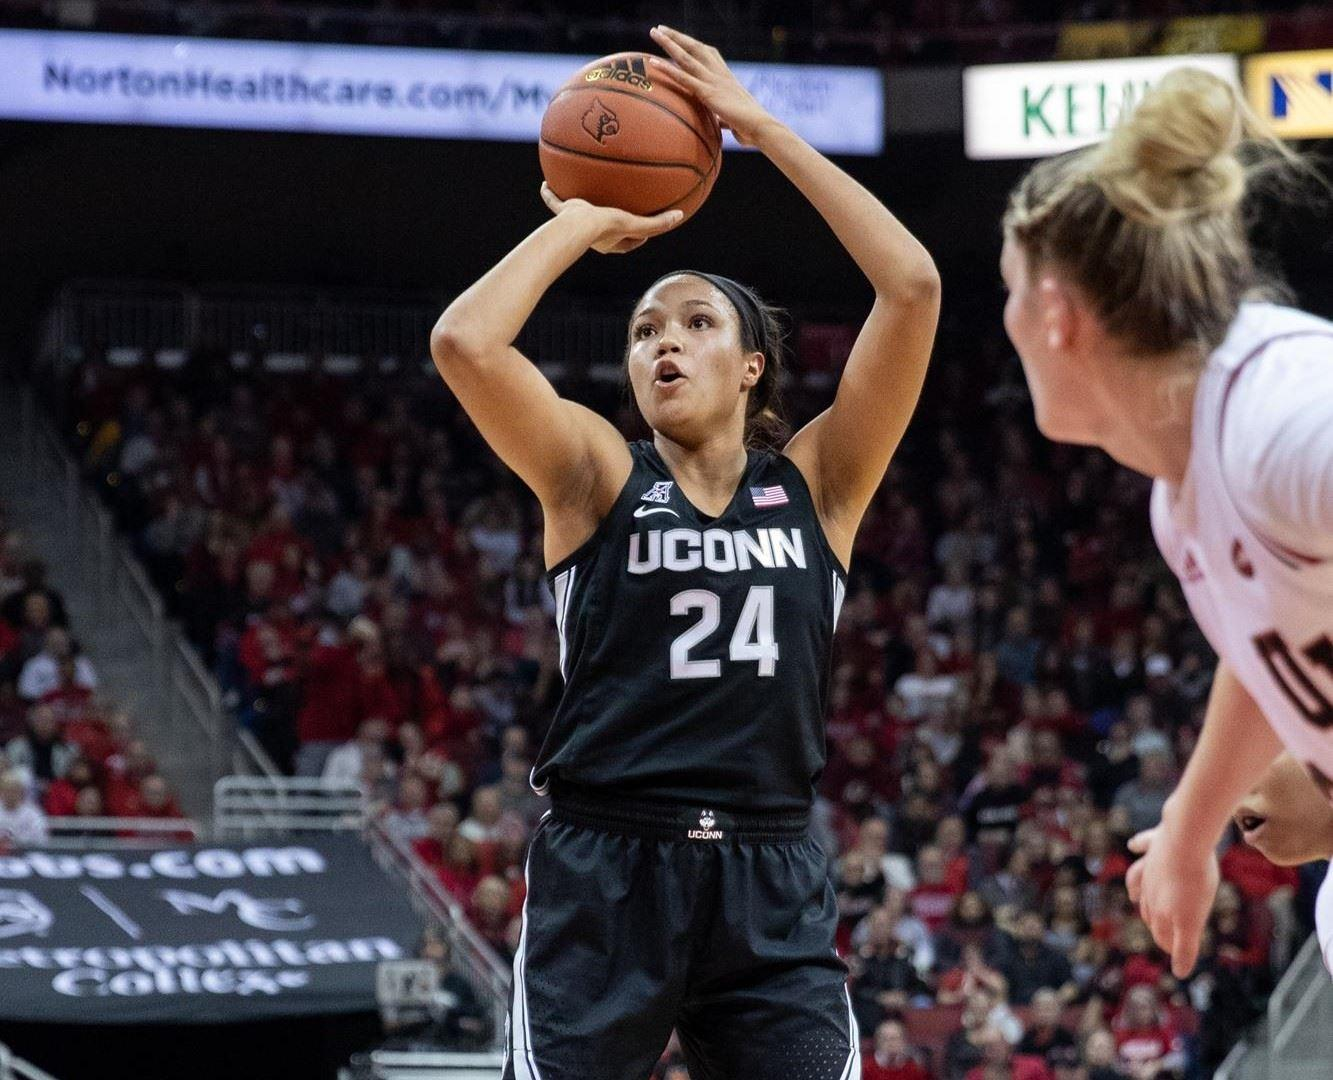 UConn women's basketball is the best of the AAC.